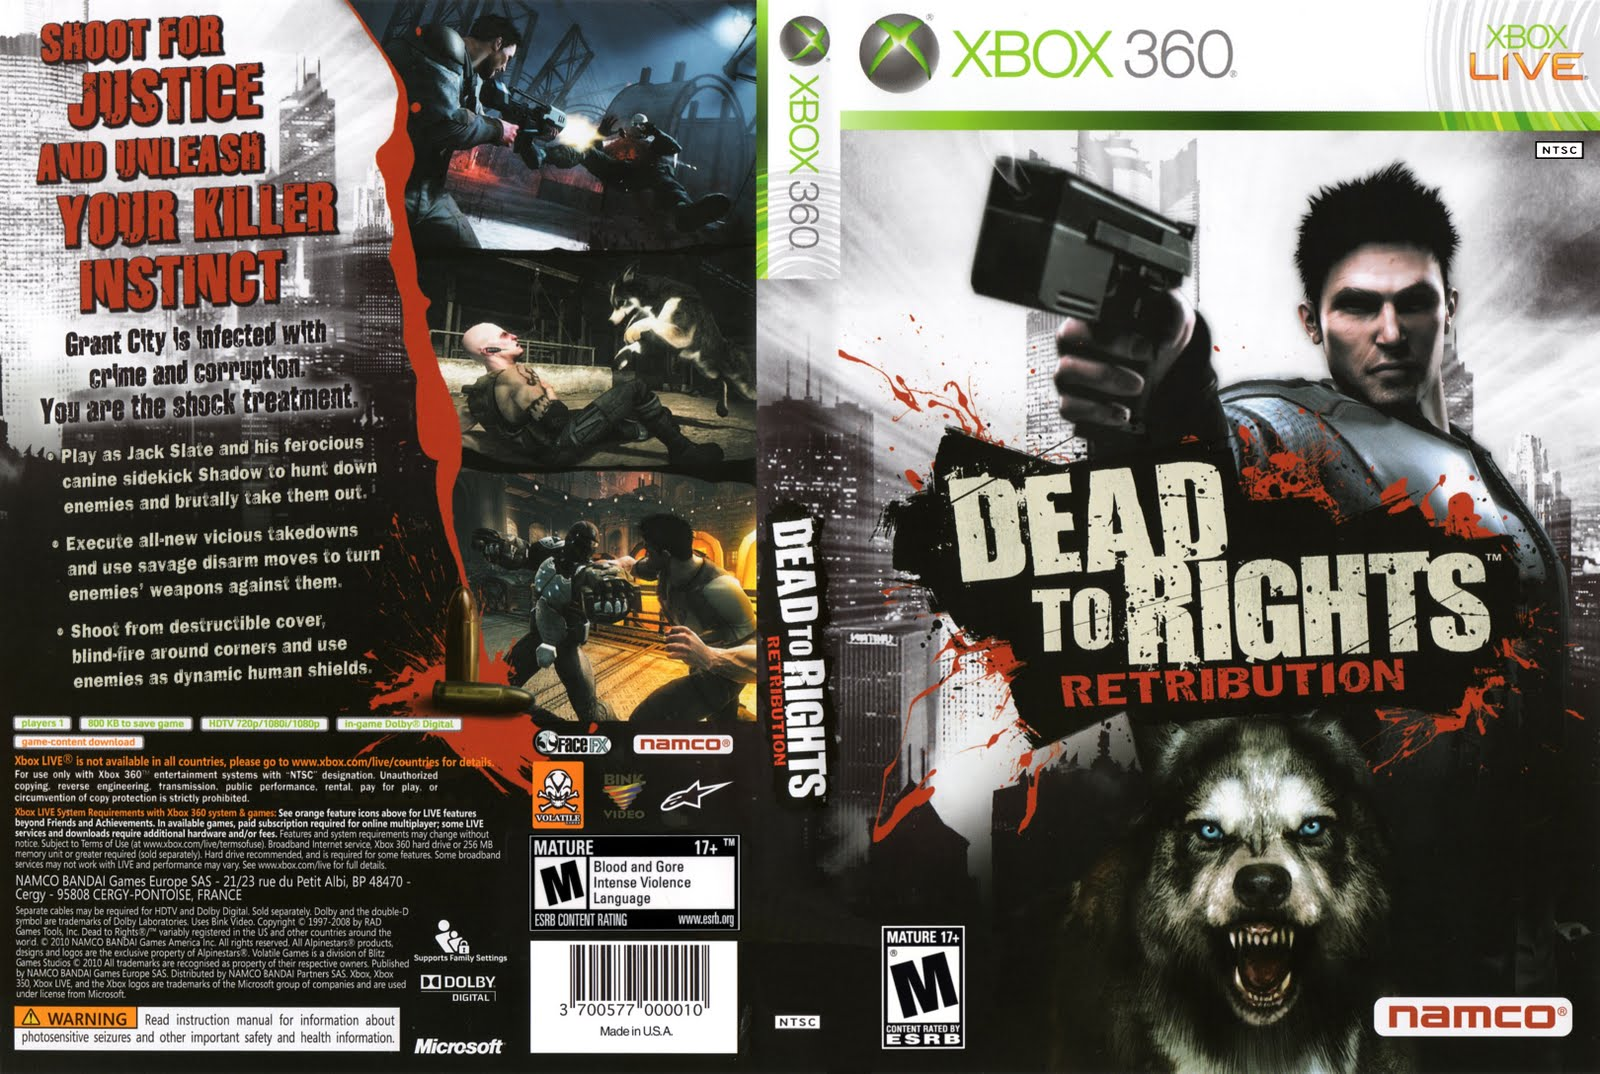 Xbox 360 Covers Dead To Rights Retribution